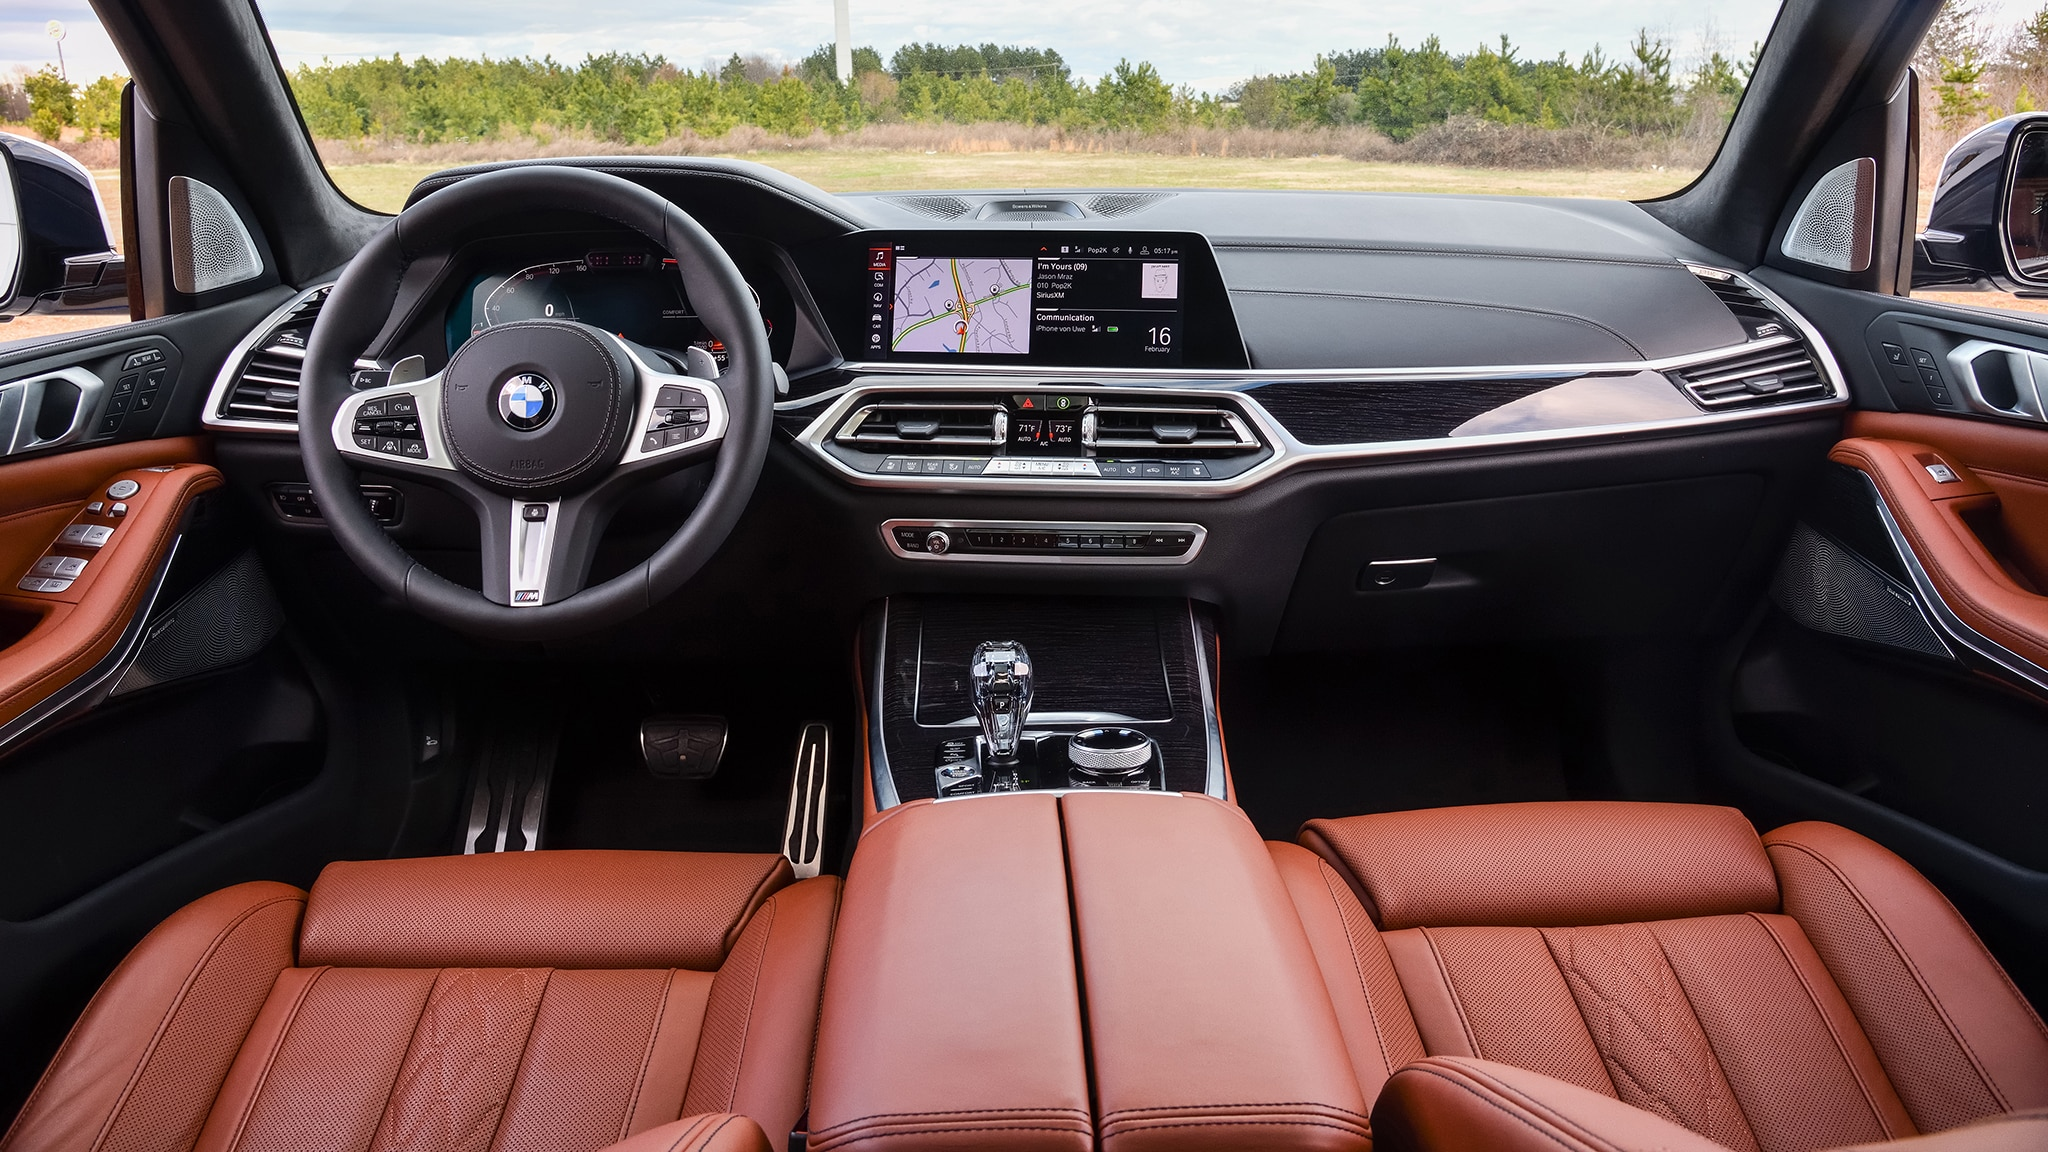 2019 Bmw X7 First Drive The 7 Series Of Luxury Suvs Automobile